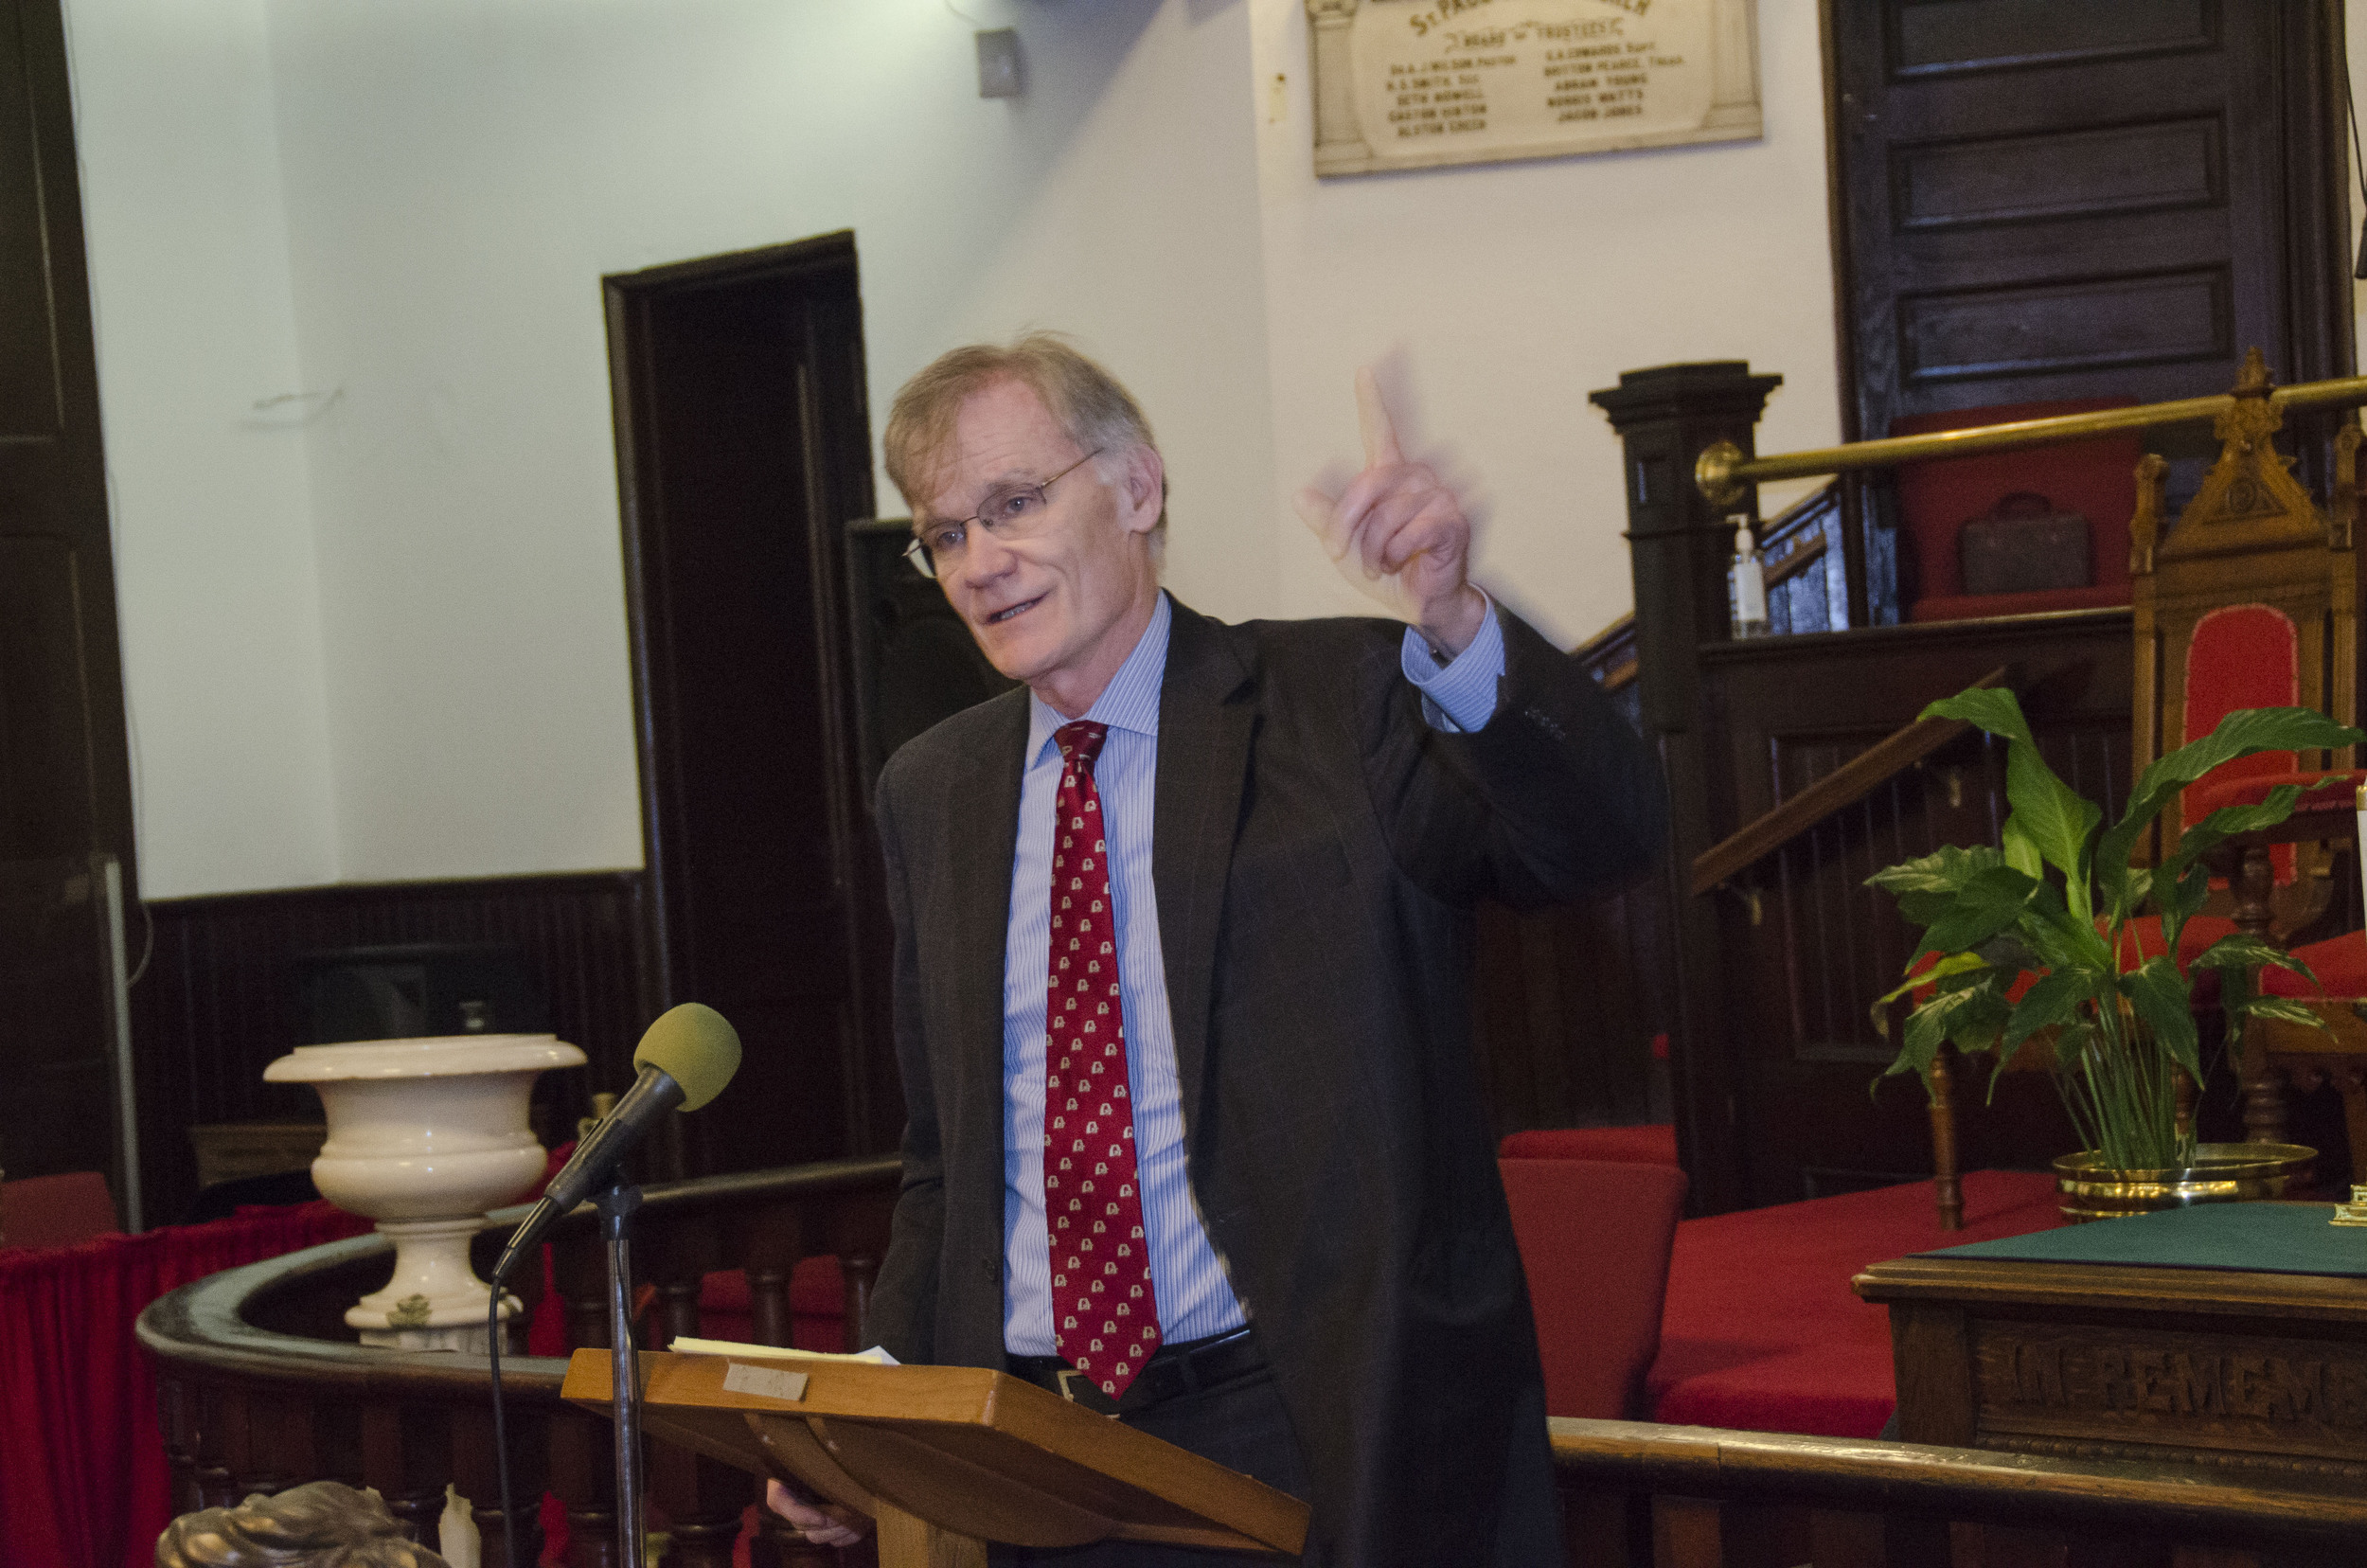 David Blight speaking at St. John AME Church in Raleigh, NC on 10/1/2015.